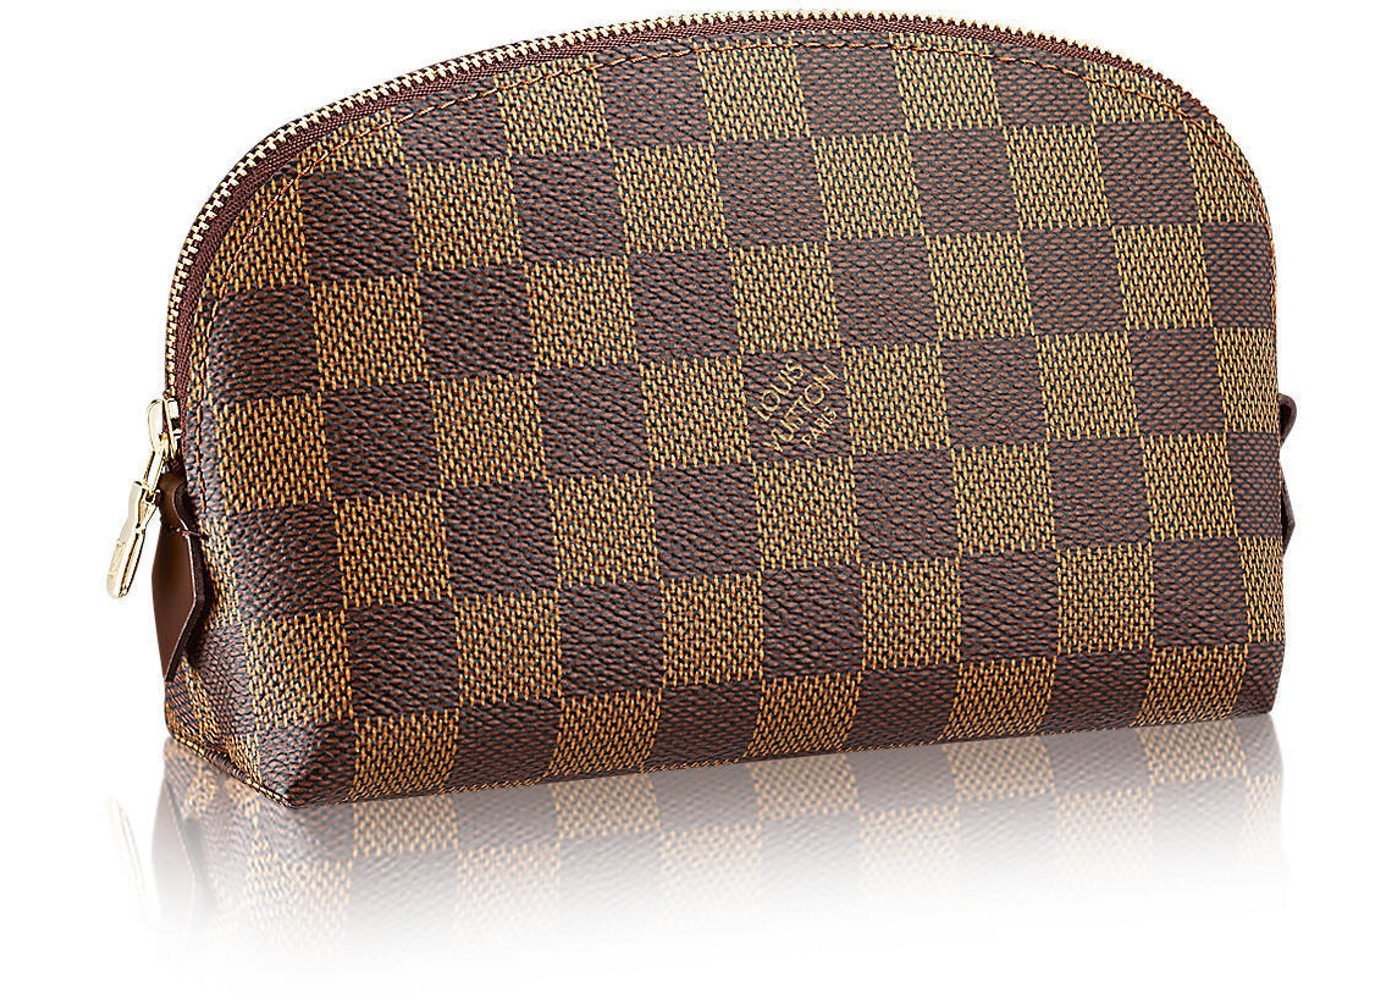 Louis Vuitton Cosmetic Pouch Damier Ebene Brown by Stock X